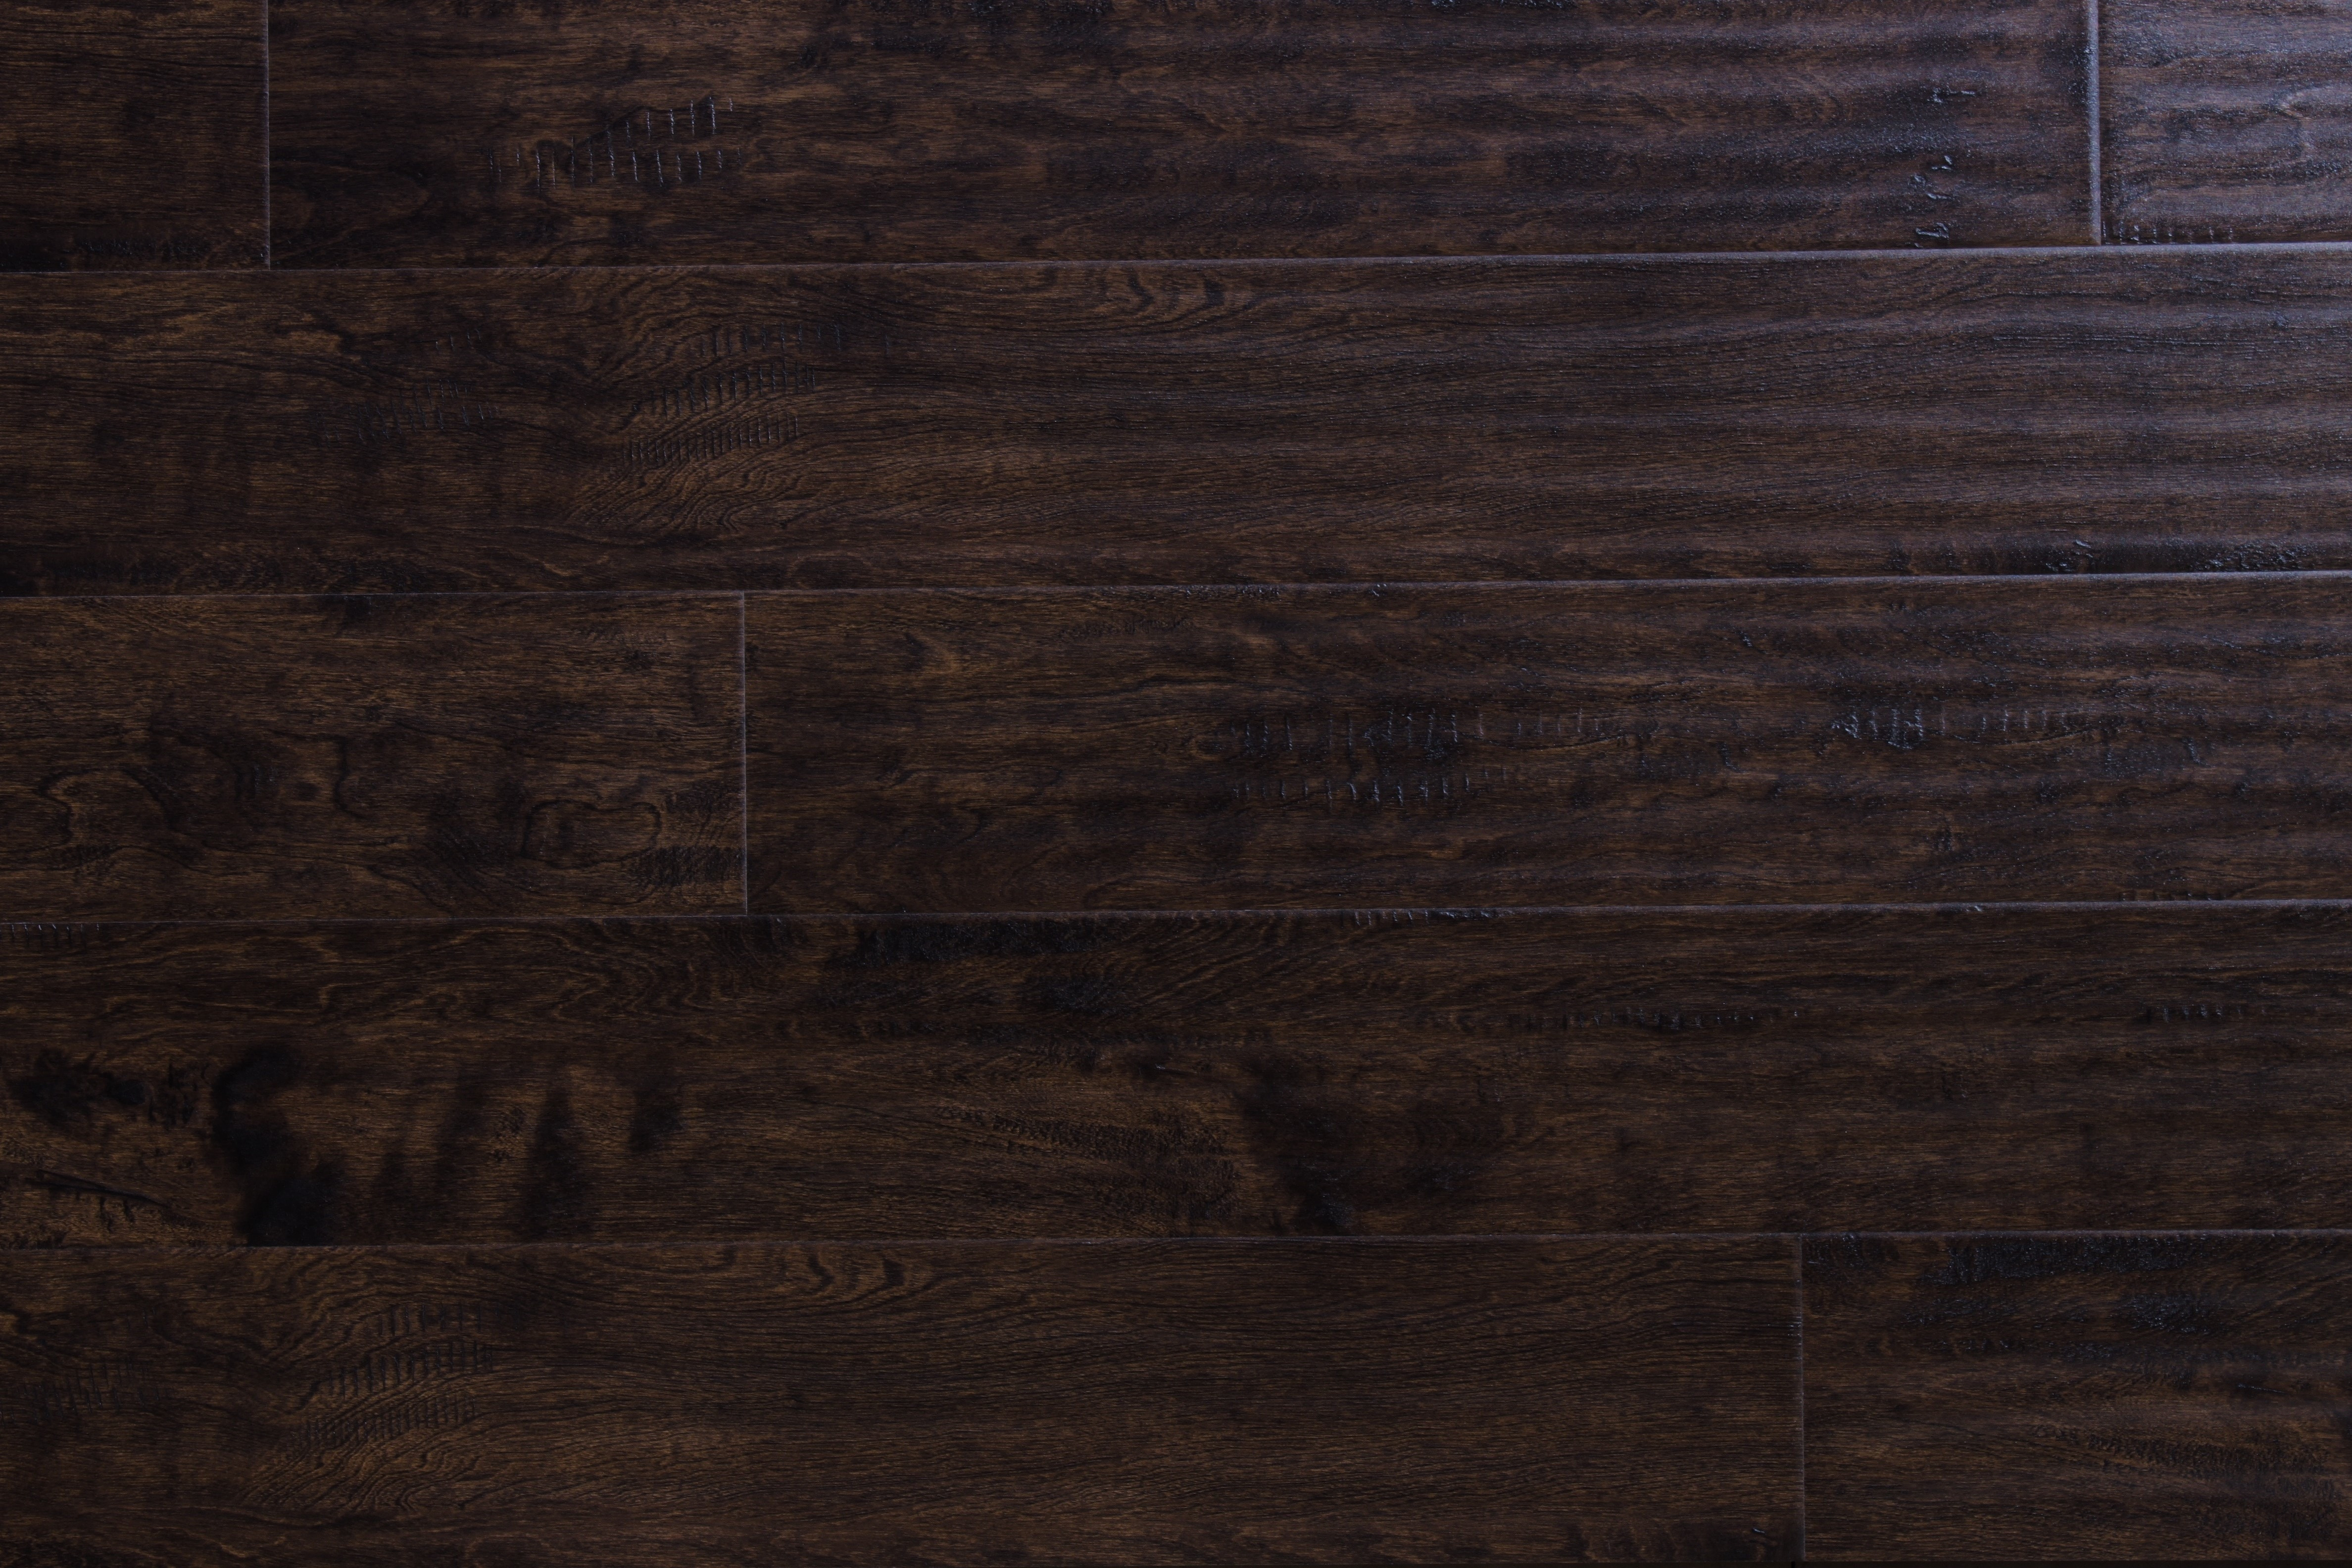 hardwood flooring grades canada of wood flooring free samples available at builddirecta intended for tailor multi gb 5874277bb8d3c